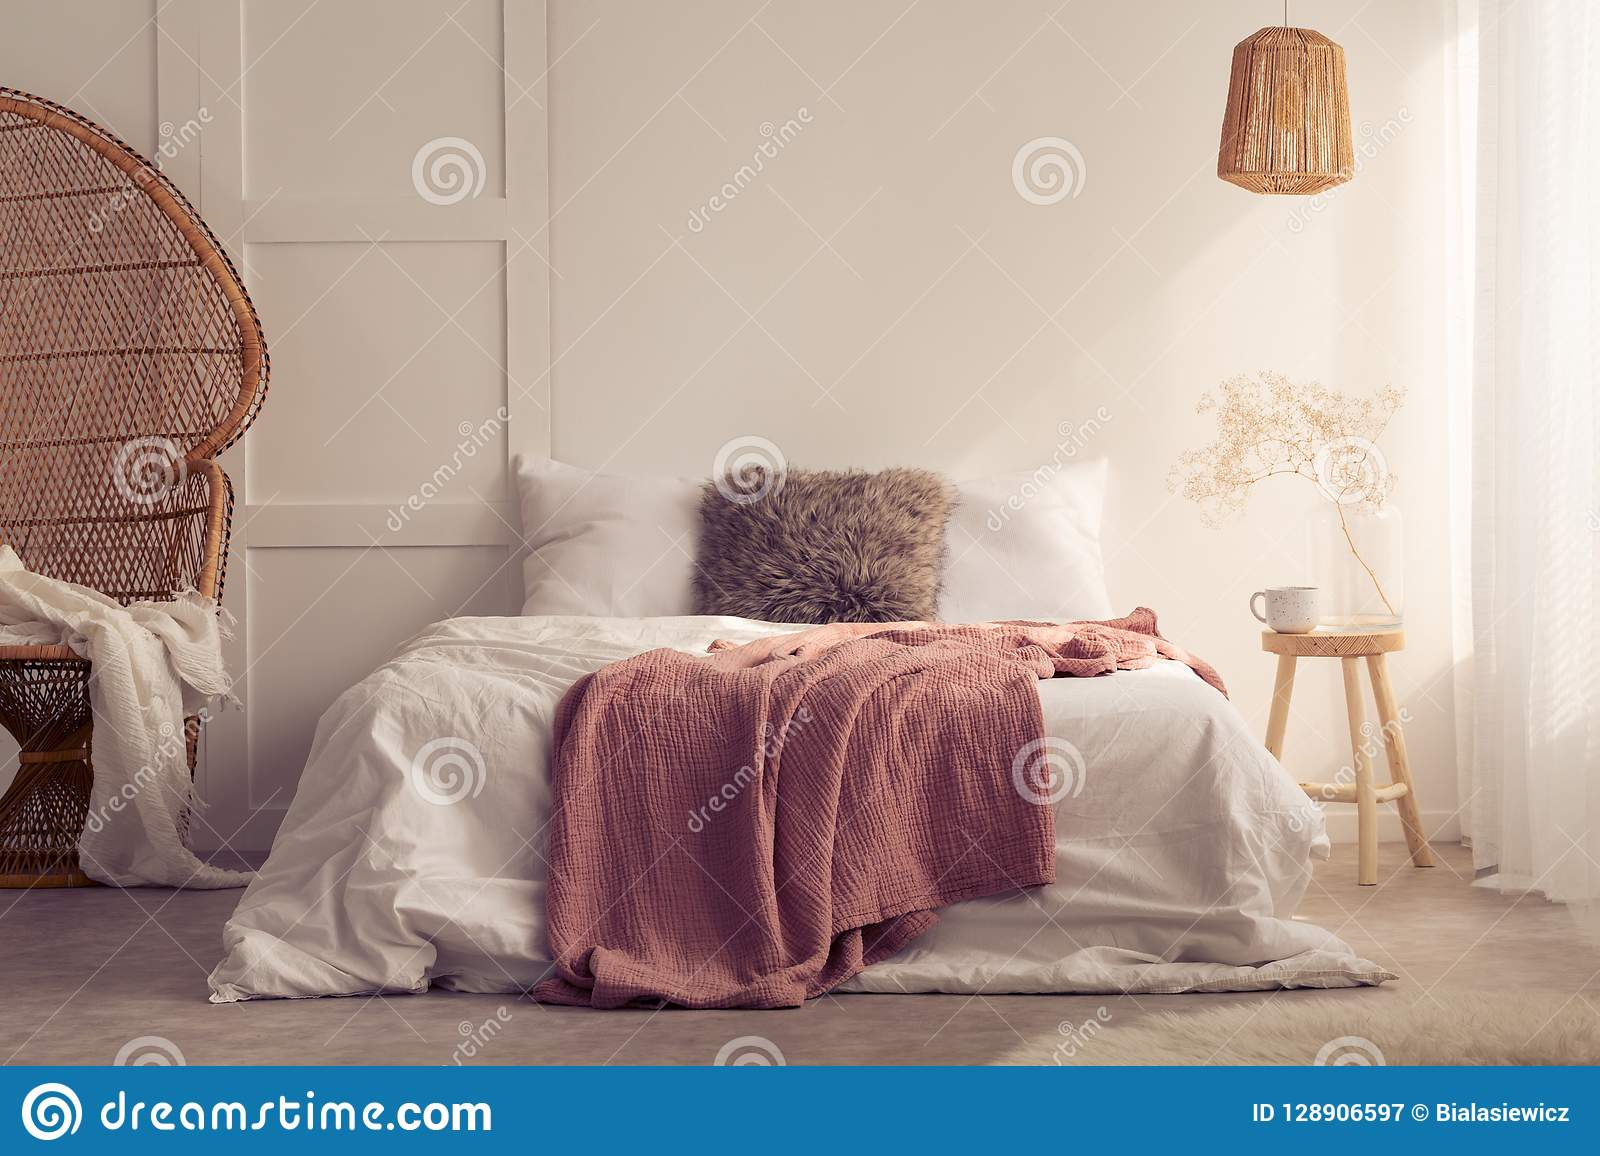 Red Blanket On Bed With Cushions In White Bedroom Interior ...